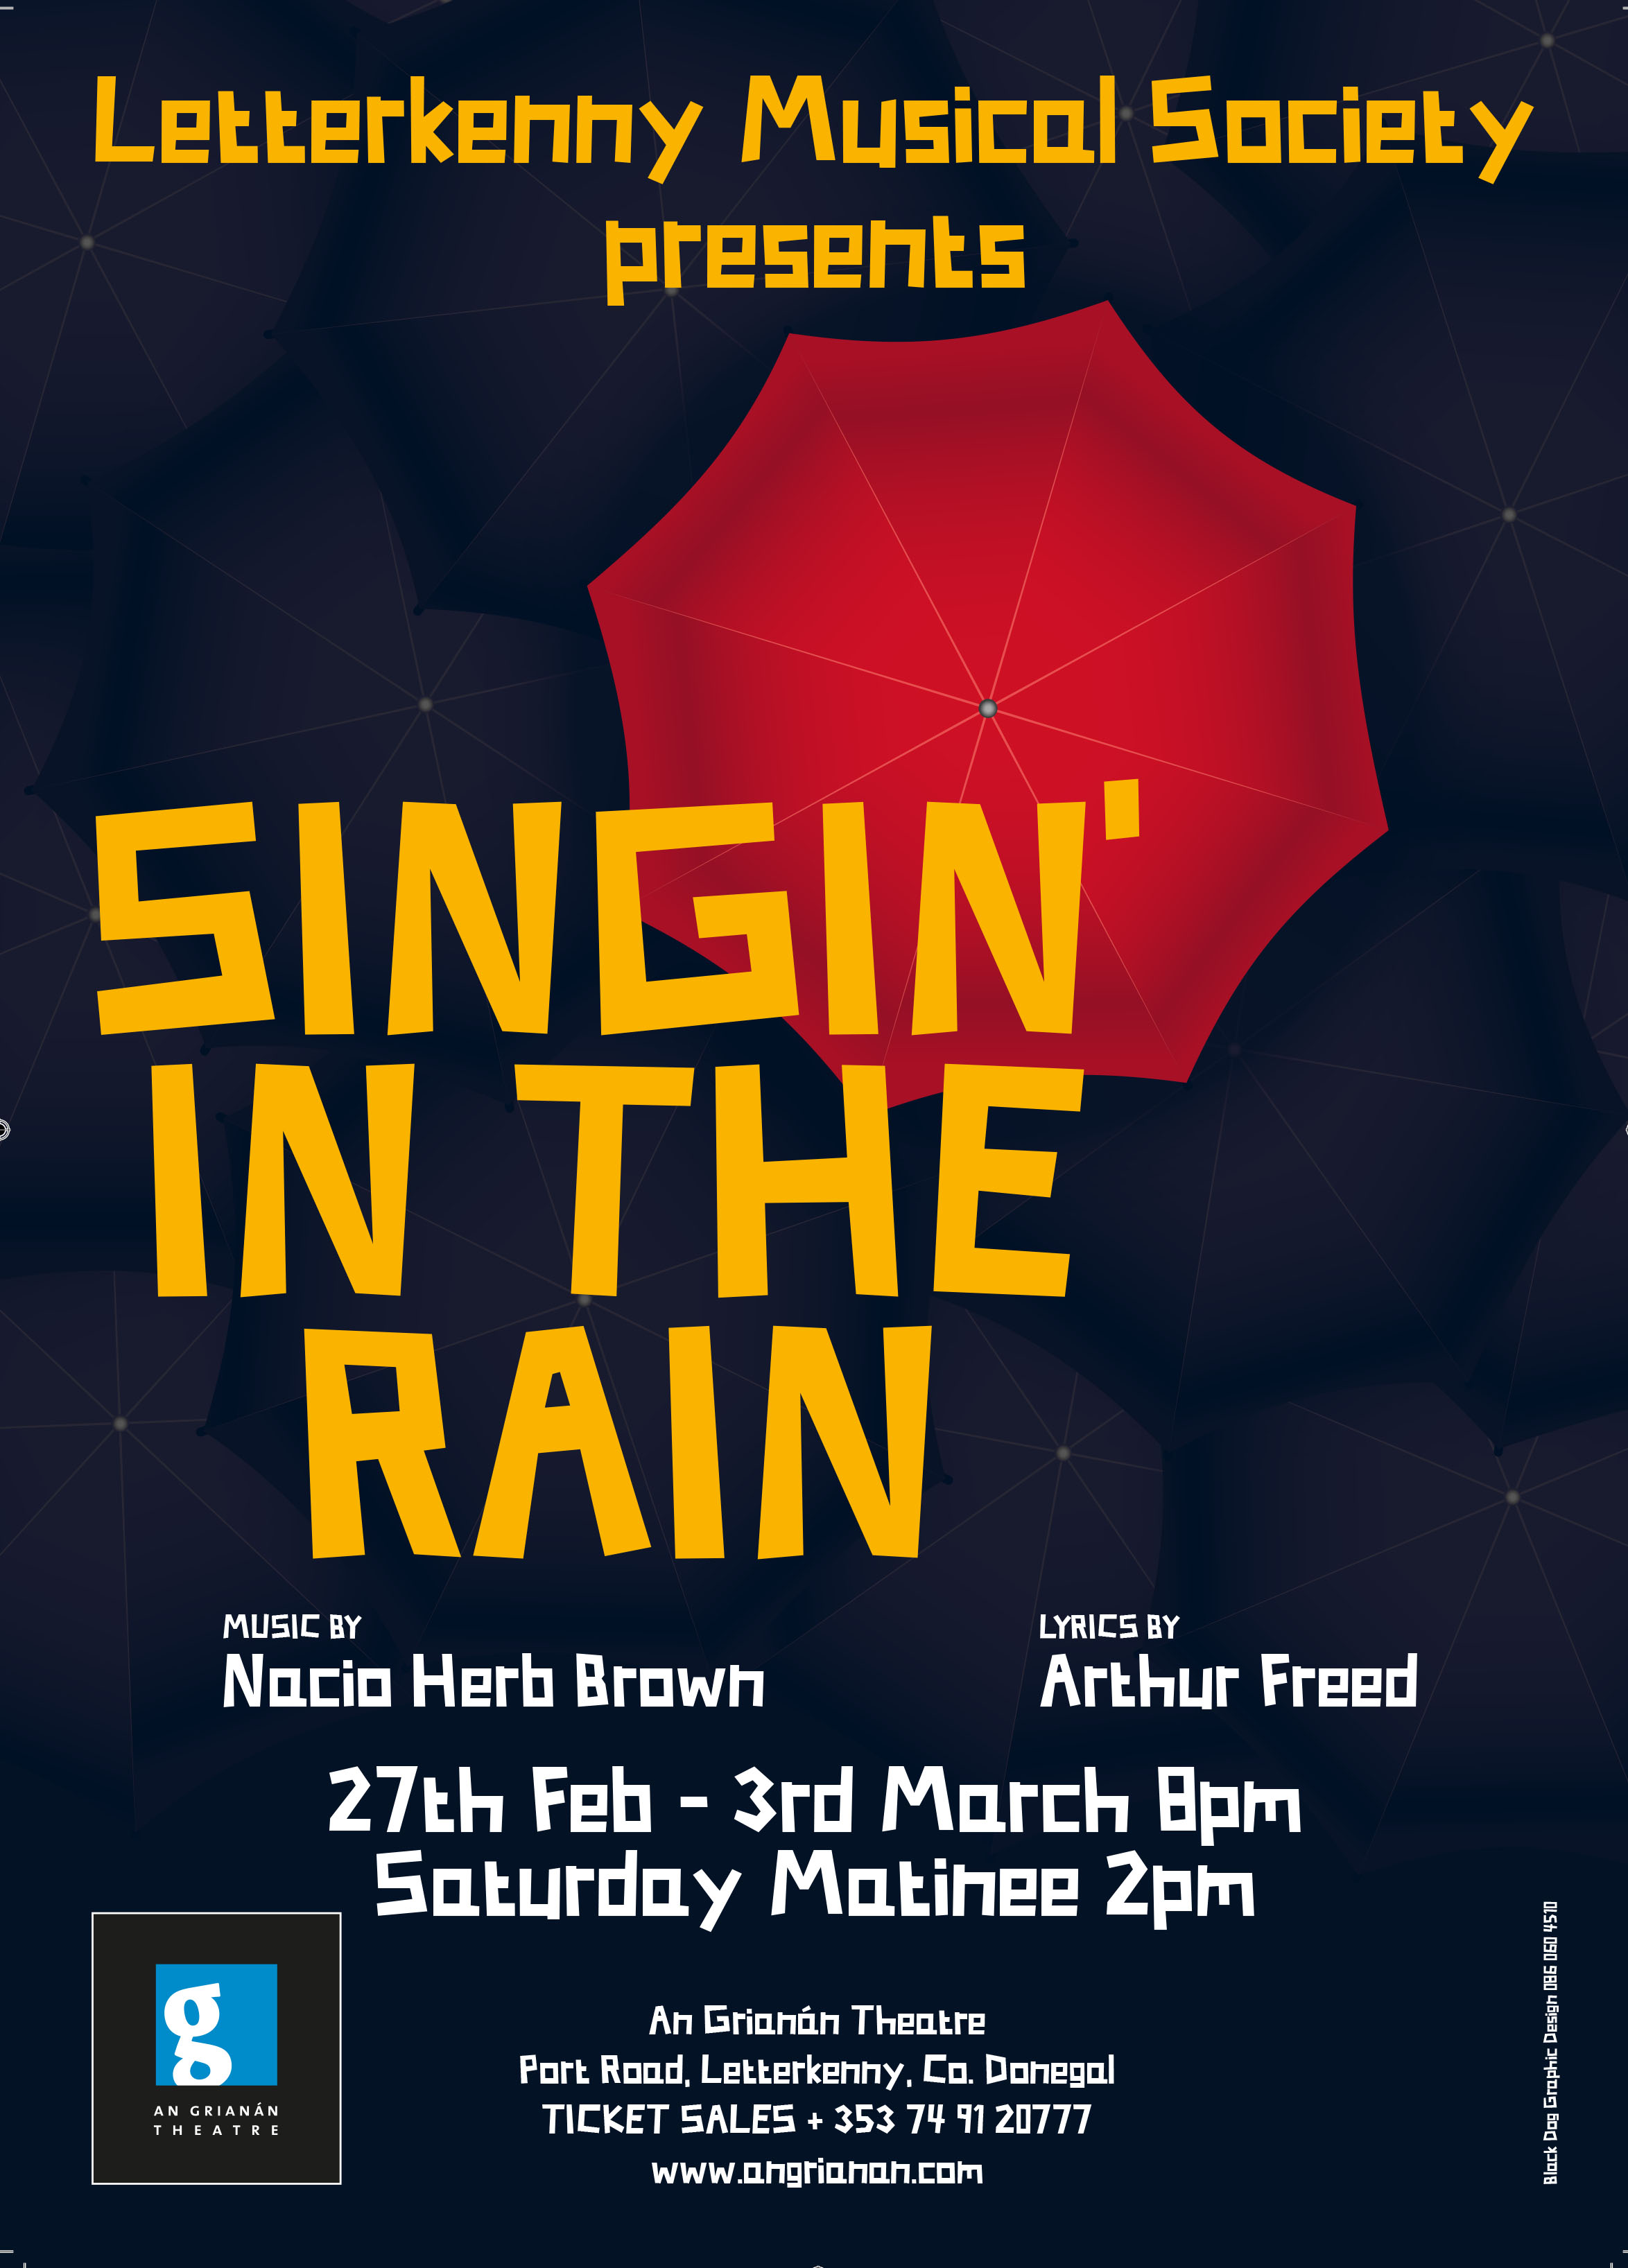 LMS Singin' In The Rain Poster